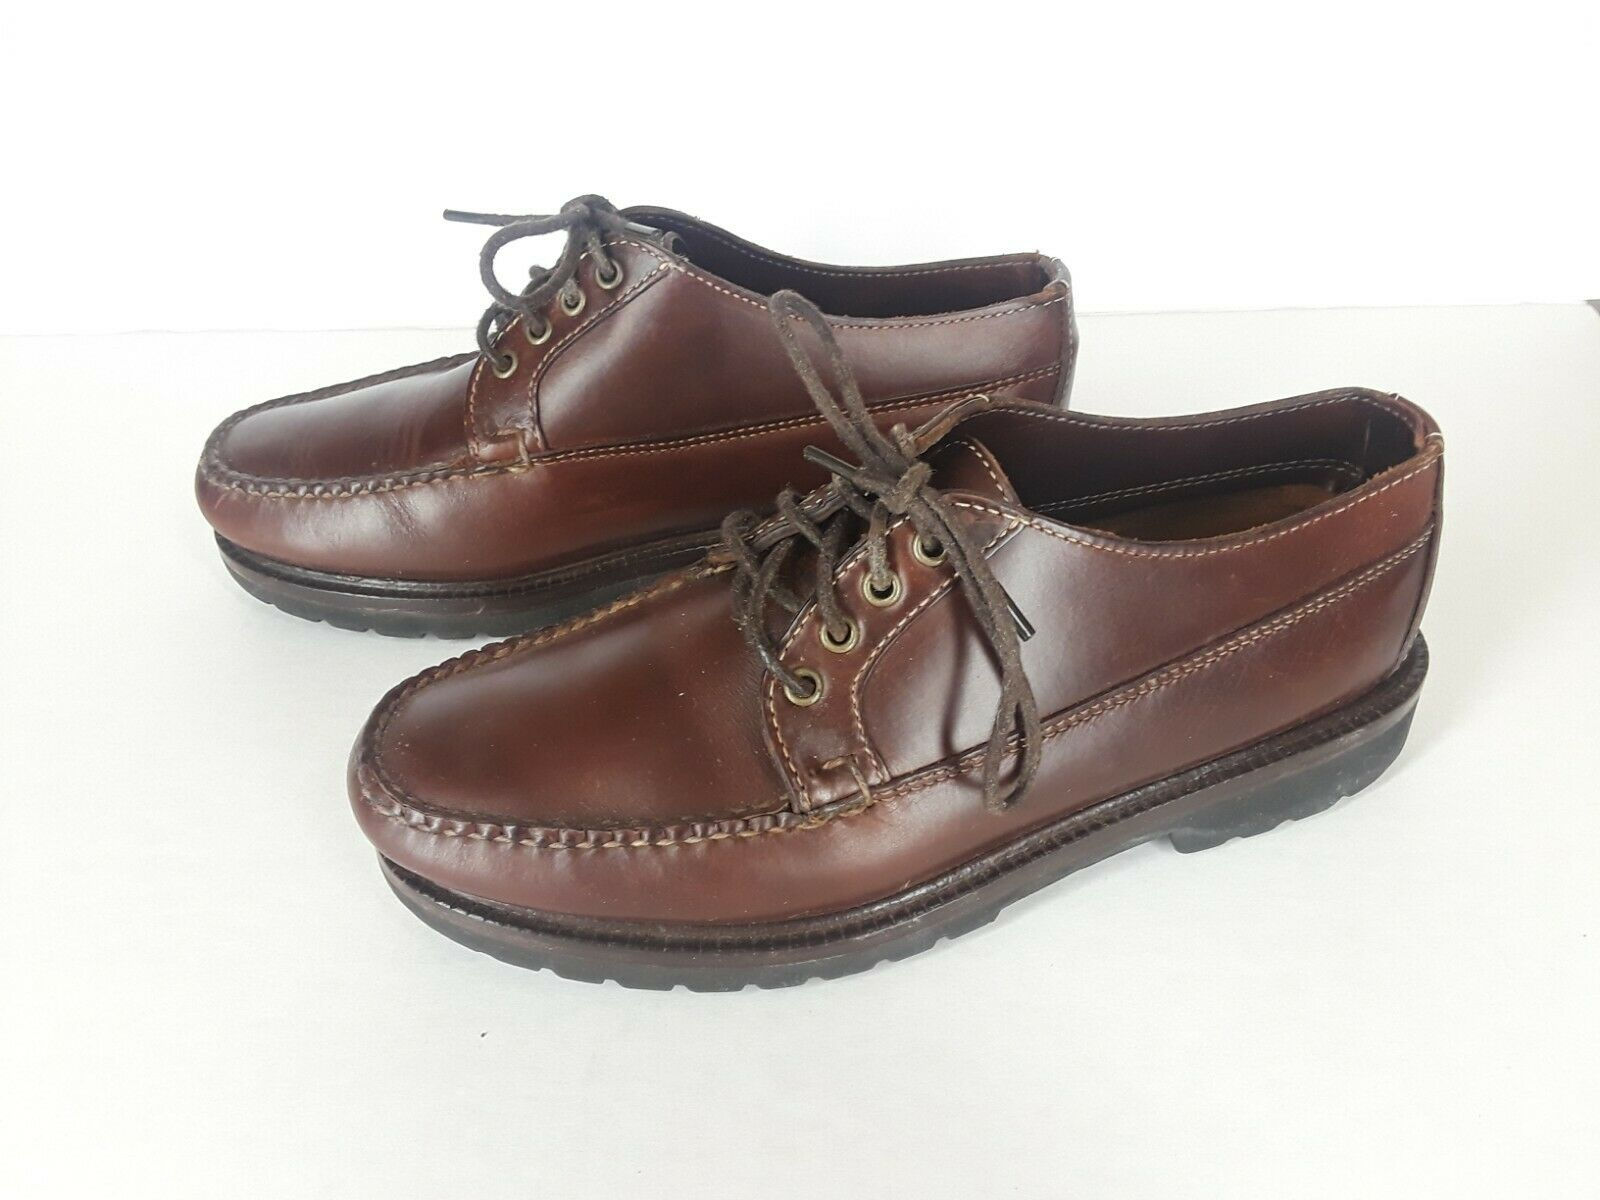 LL Bean Men's 7.5 EE Brown Leather Oxford shoes Casual Laced